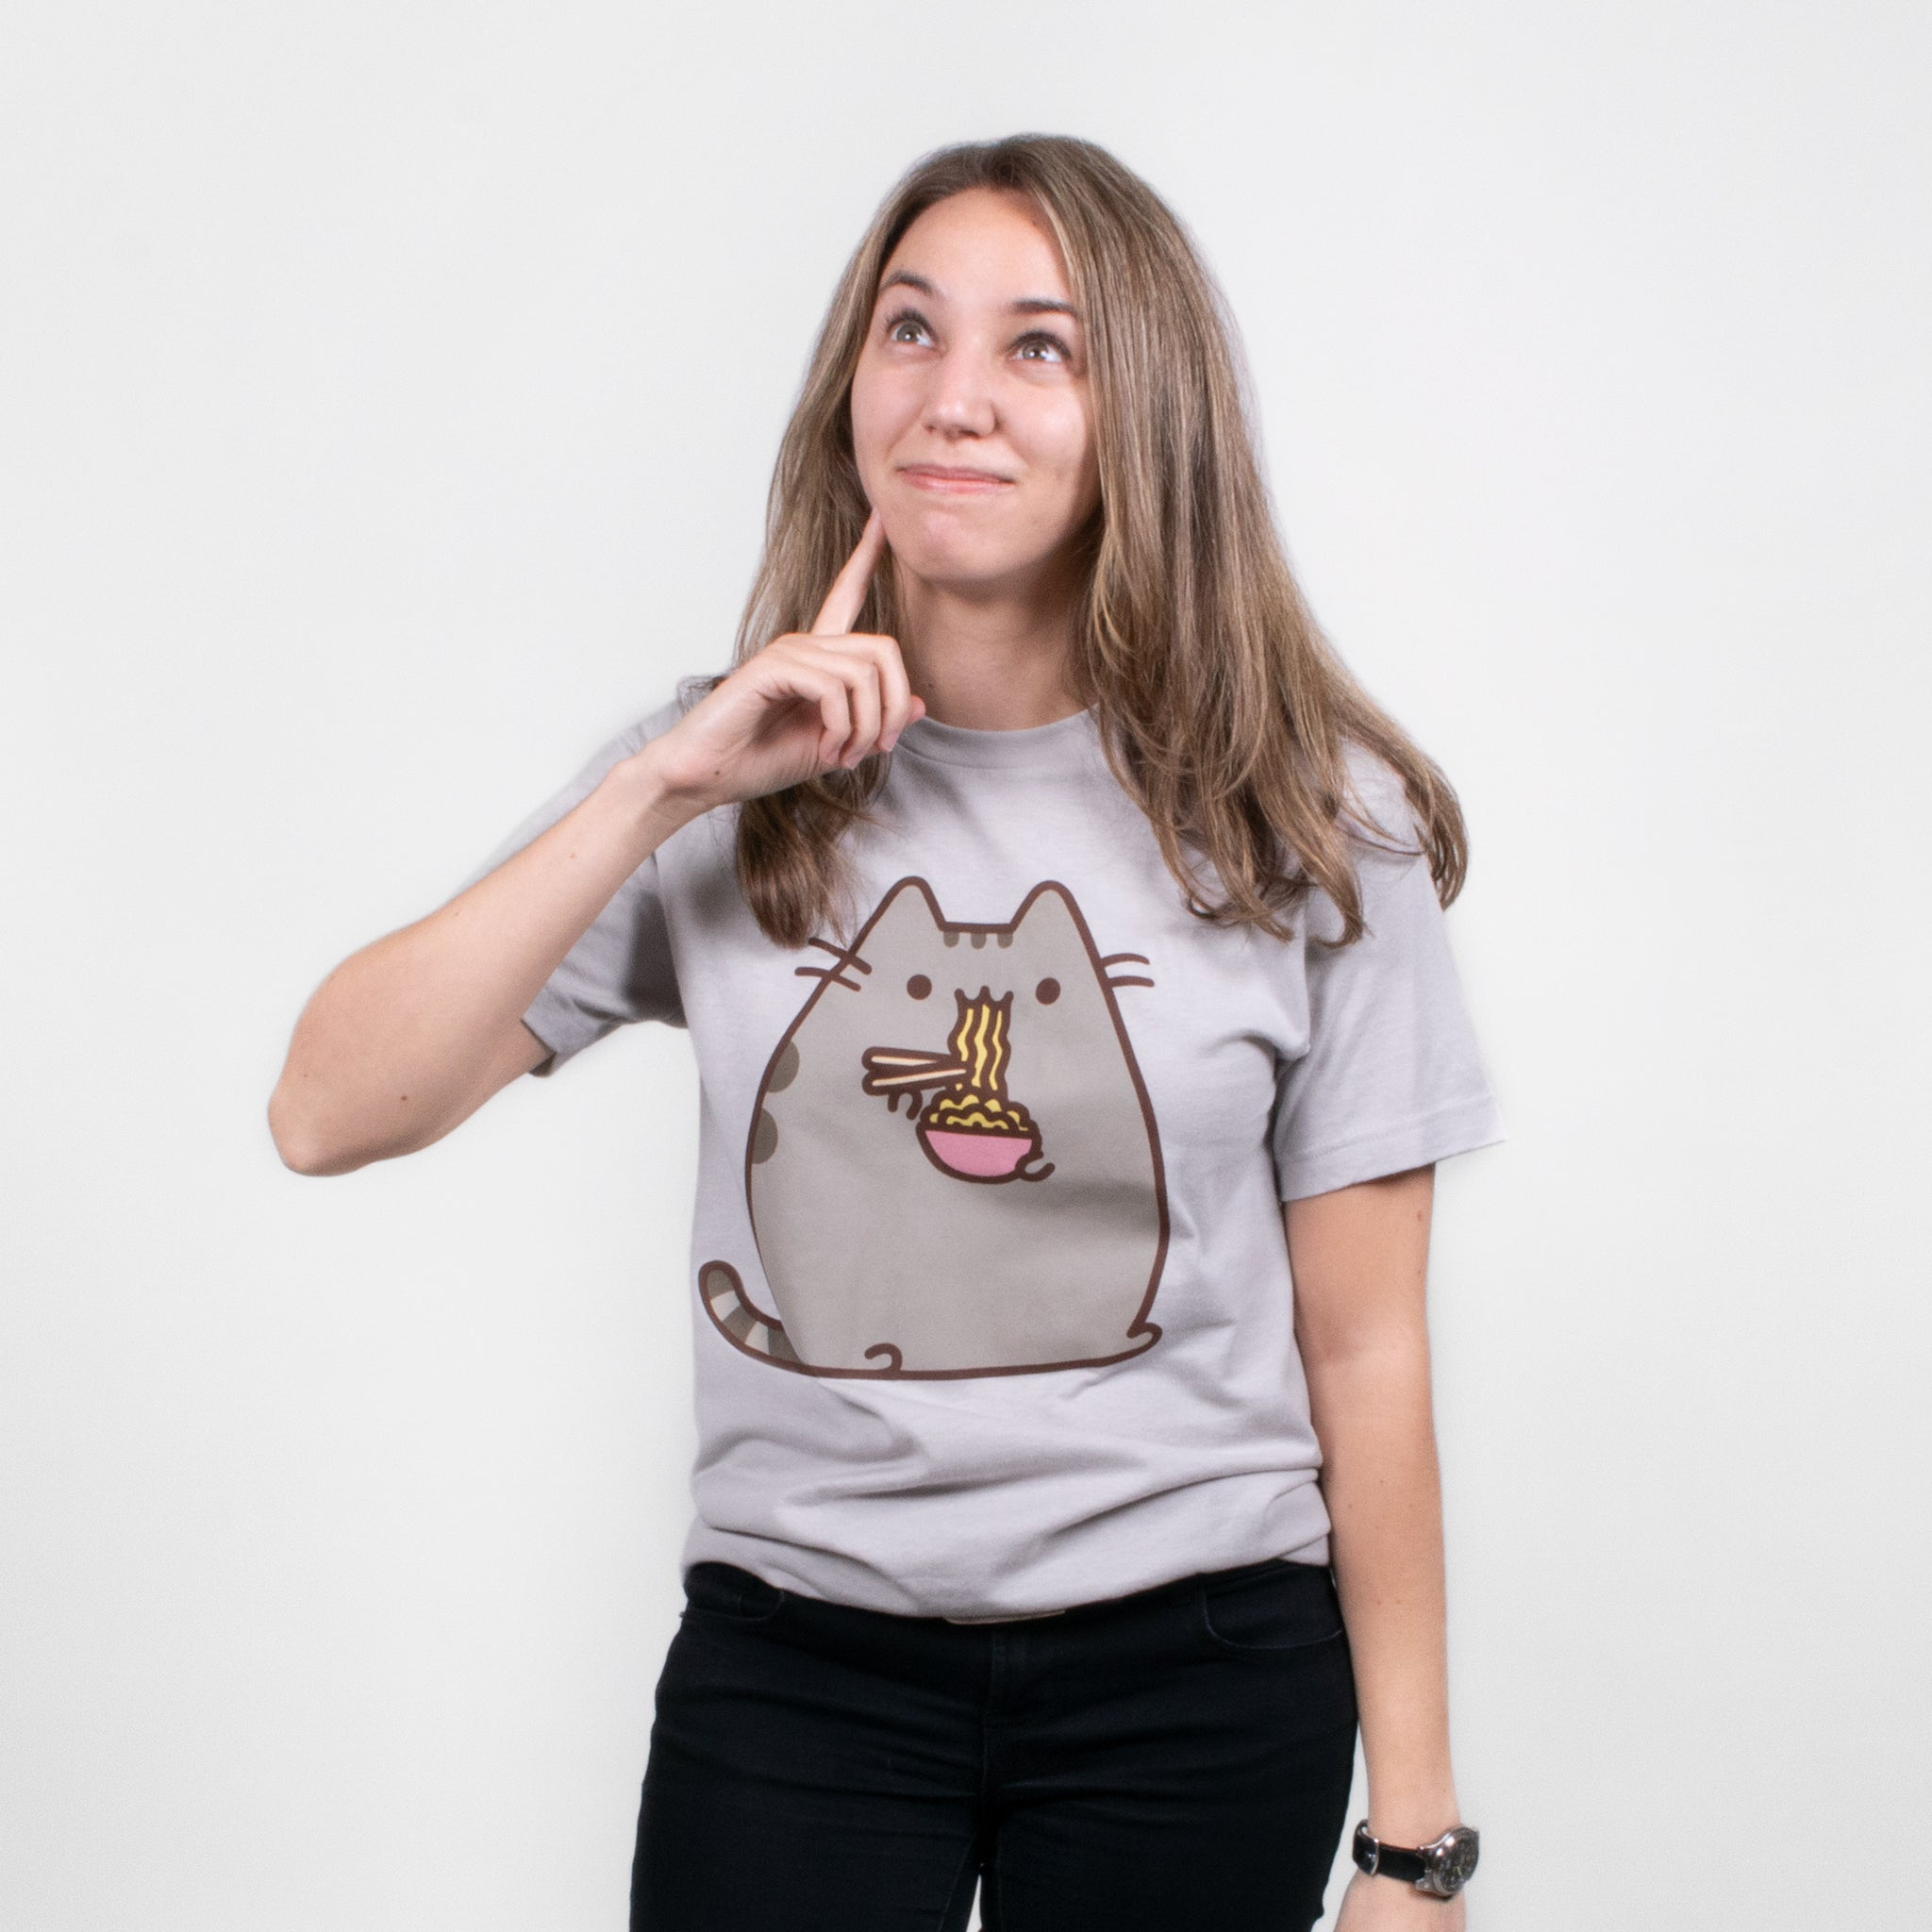 women pusheen ramen noodles eating food cat graphic short sleeve apparel t-shirt shirt culturefly